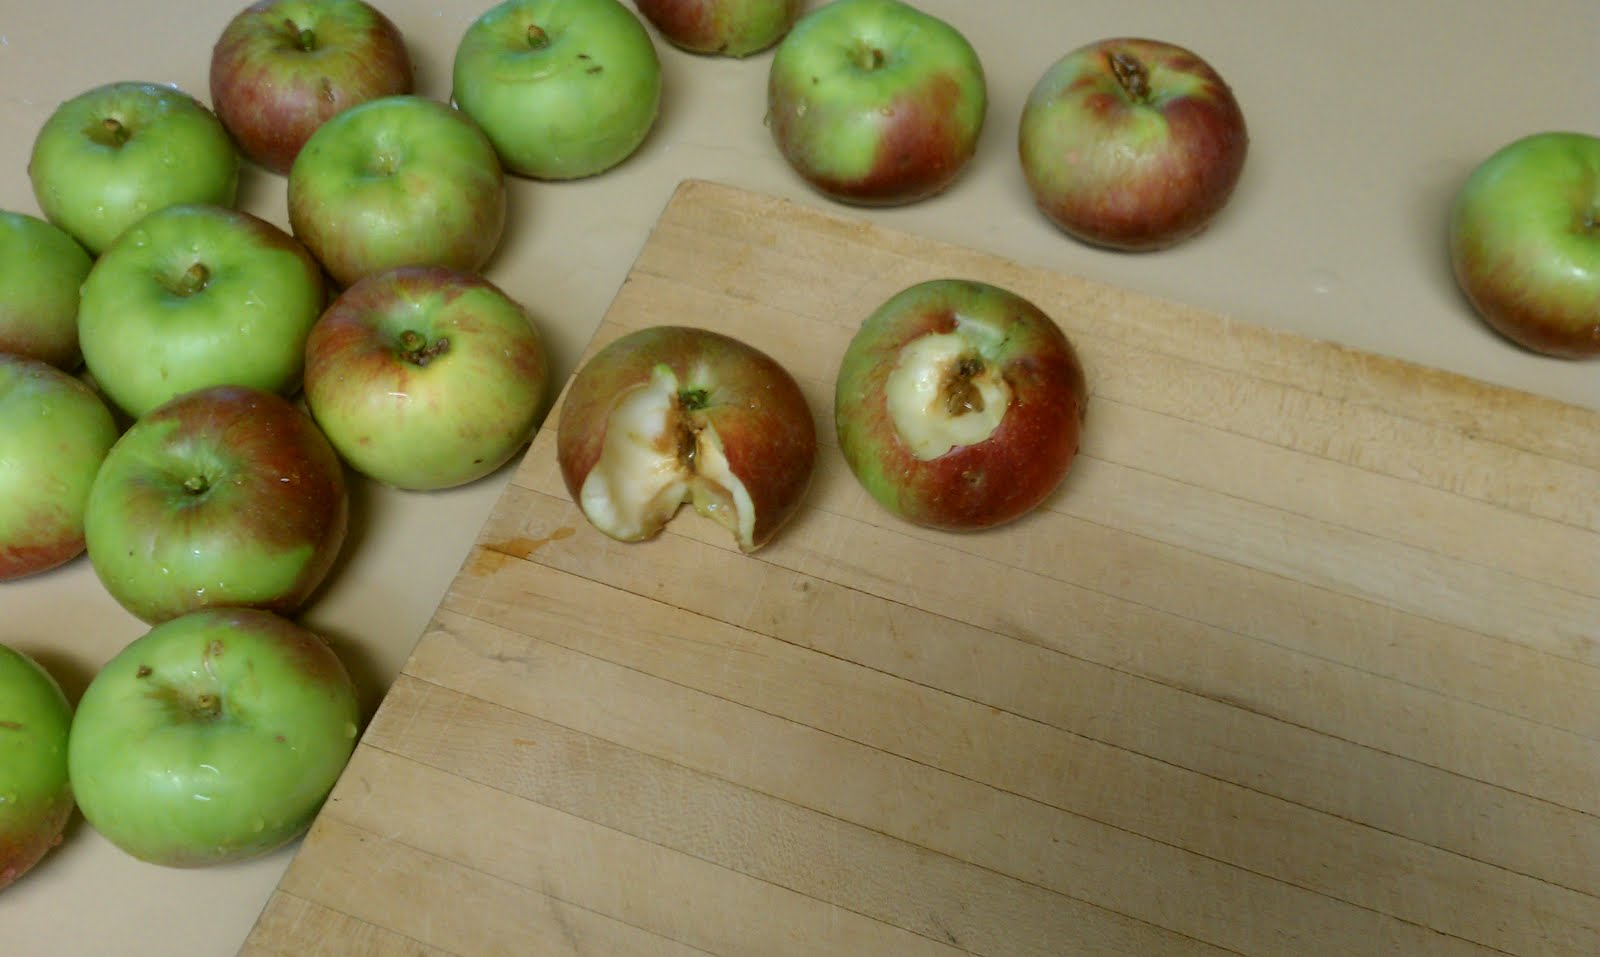 ... the World: Meditation on apples and peaches with worms in them